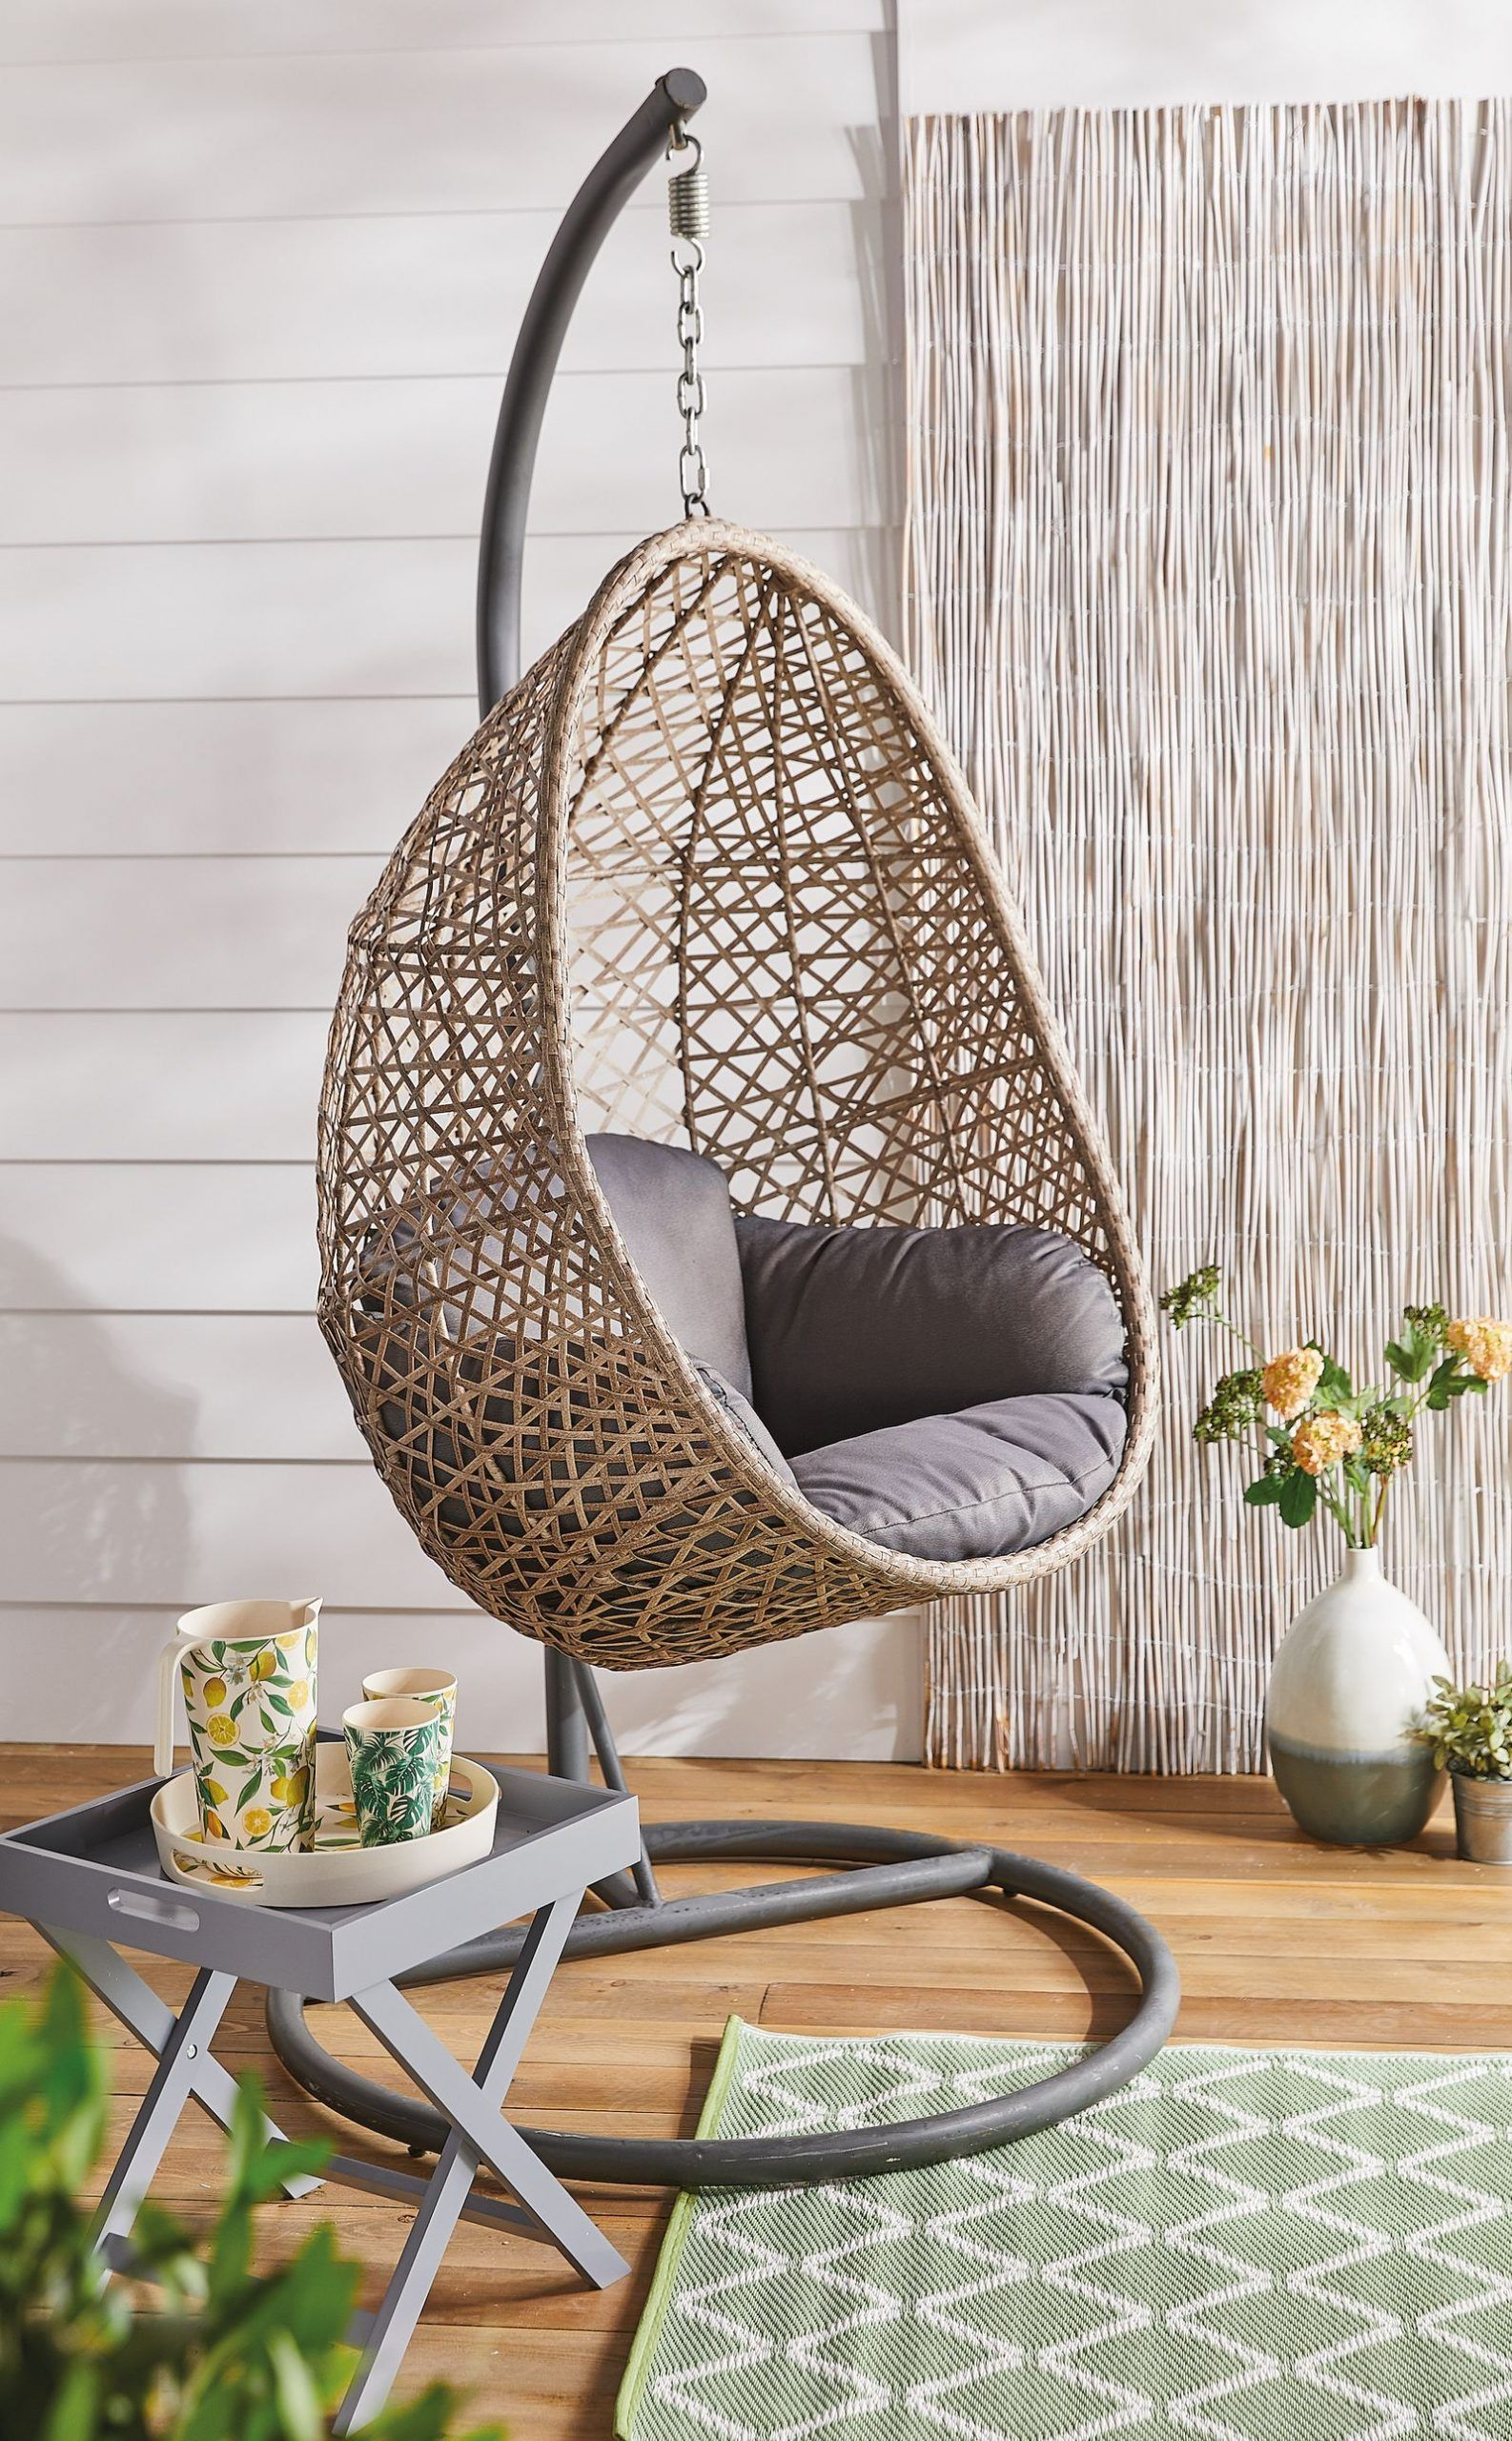 Aldi Is Selling A Hanging Egg Chair In 2020 Hanging Egg Chair